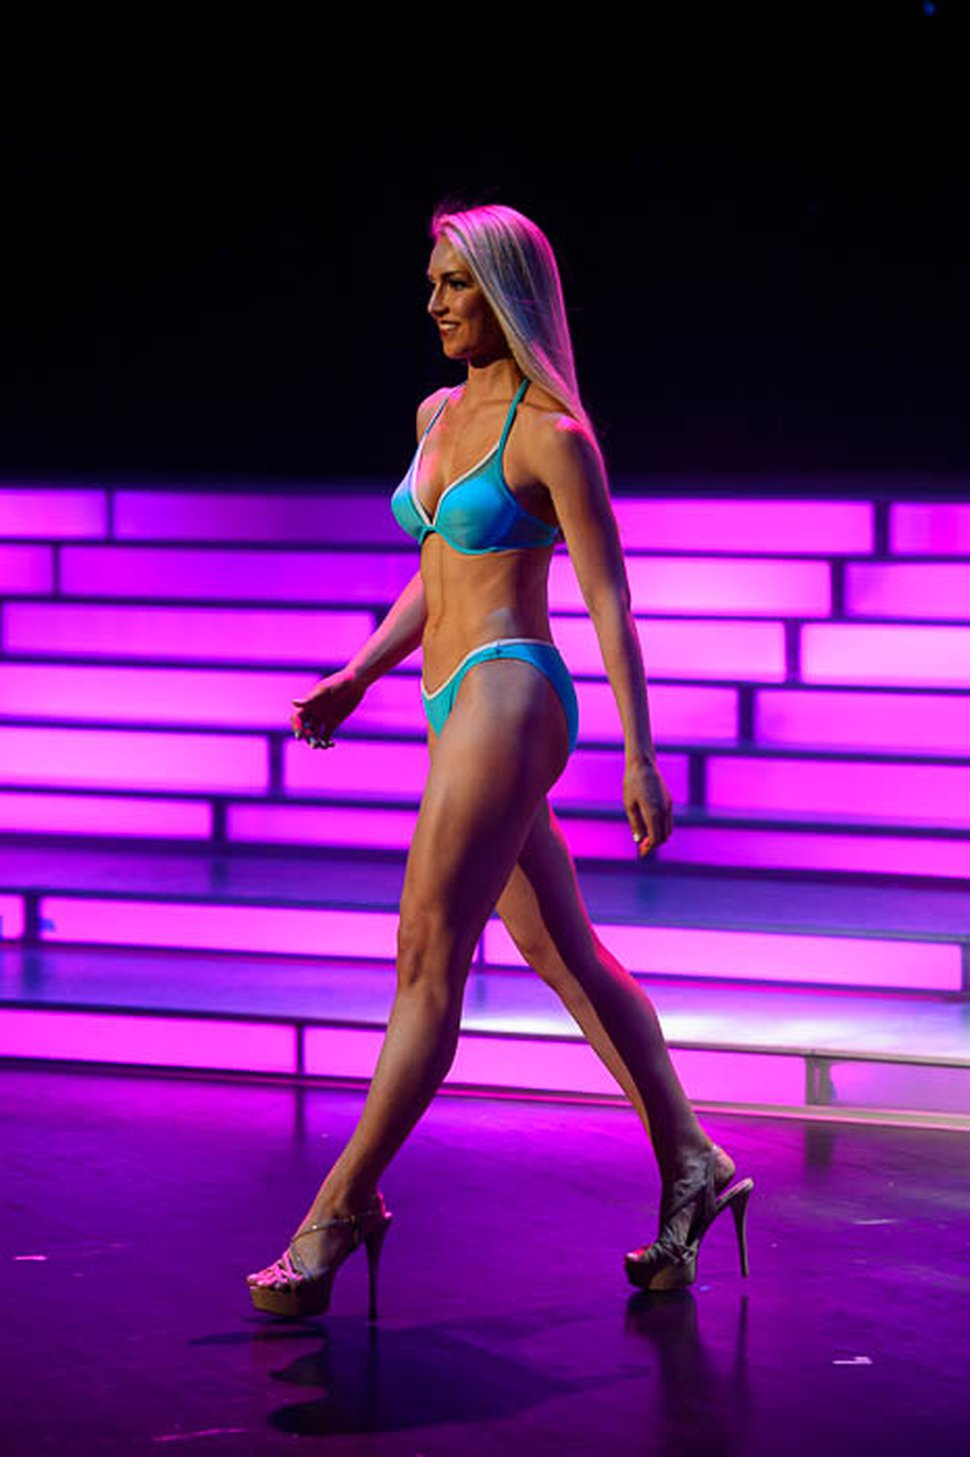 (Trent Nelson | The Salt Lake Tribune) The Lifestyle and Fitness in Swimsuit competition at the Miss Utah pageant in Salt Lake City, Wednesday June 13, 2018. Miss Timpanogos Jesse Craig.